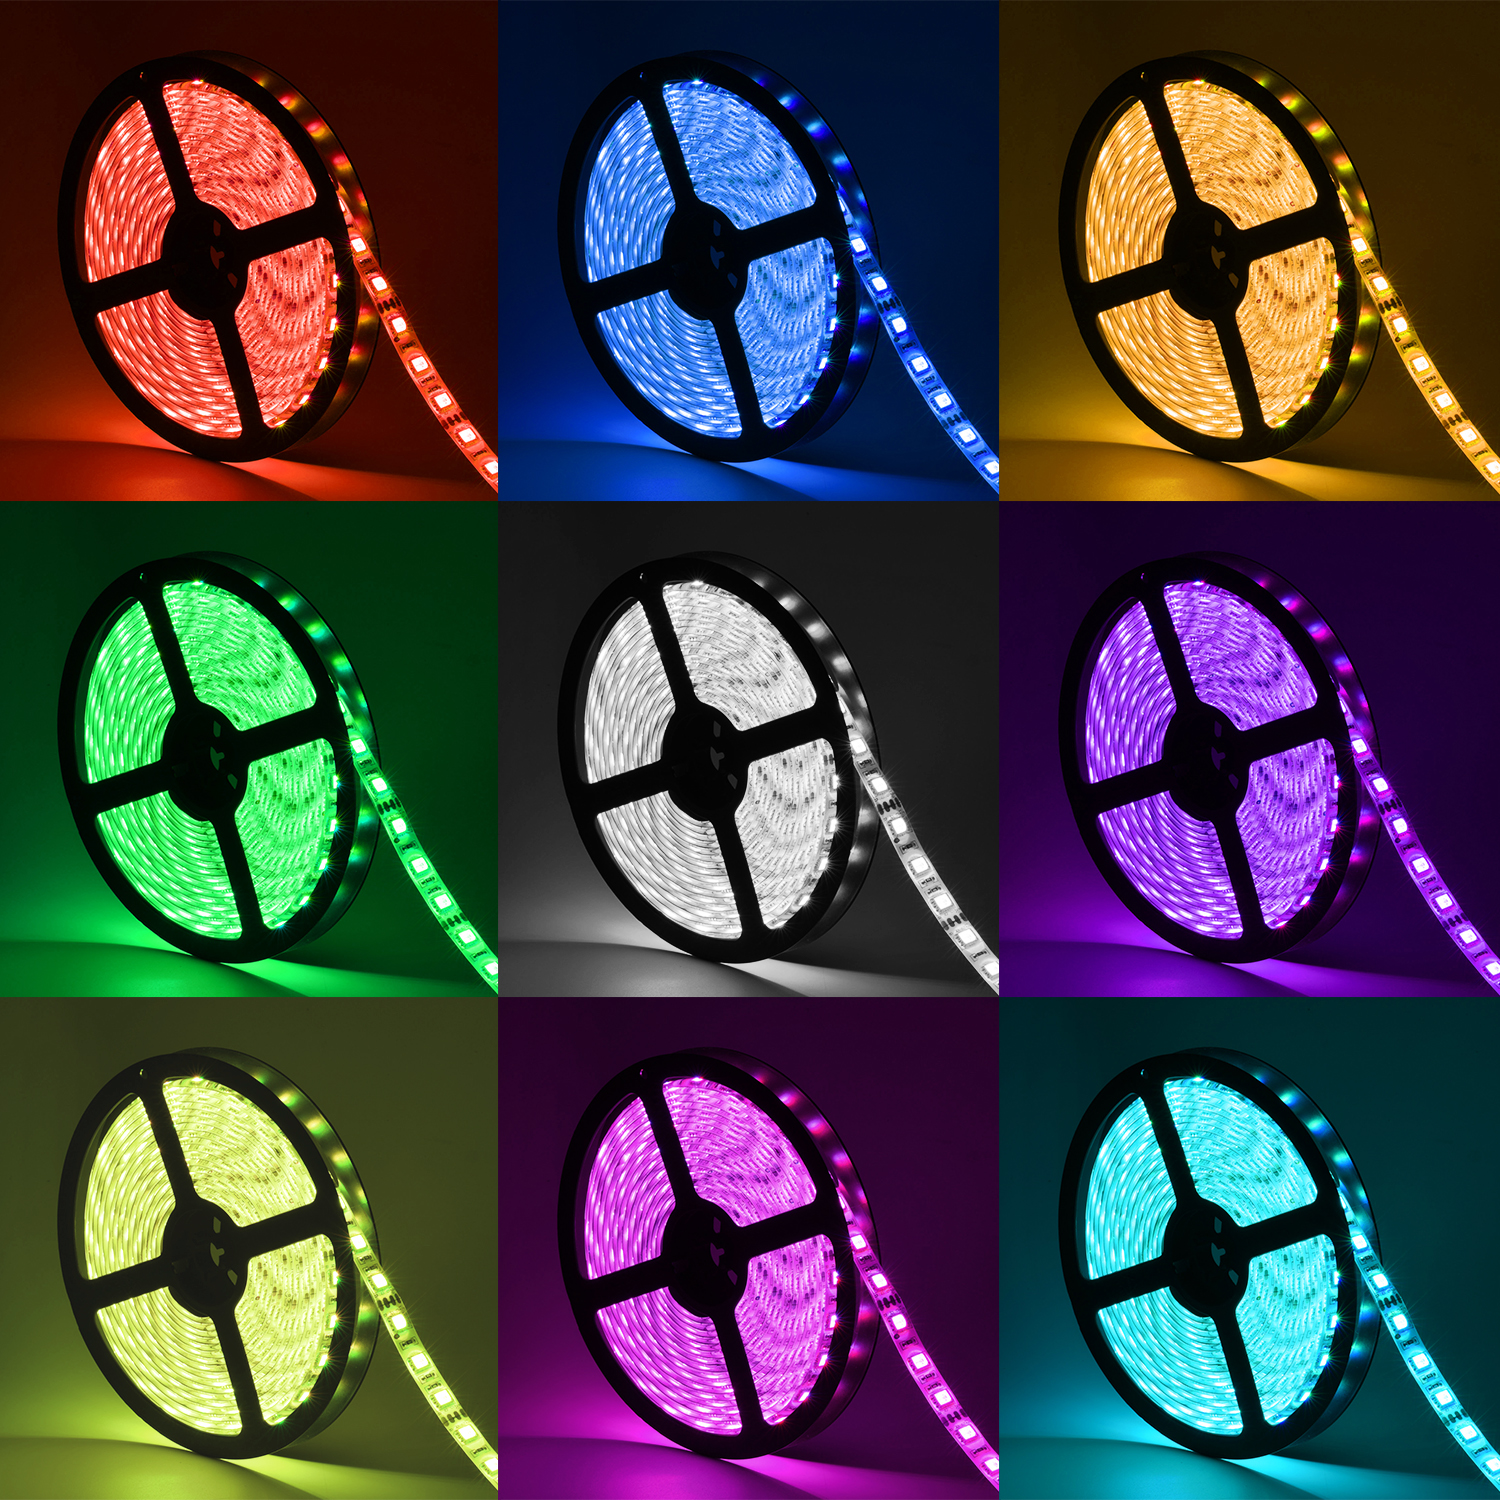 Oak Leaf SMD 5050 16.4ft RGB LED Strip Light Waterproof Strip Lights with 44 Key IR Remote Control